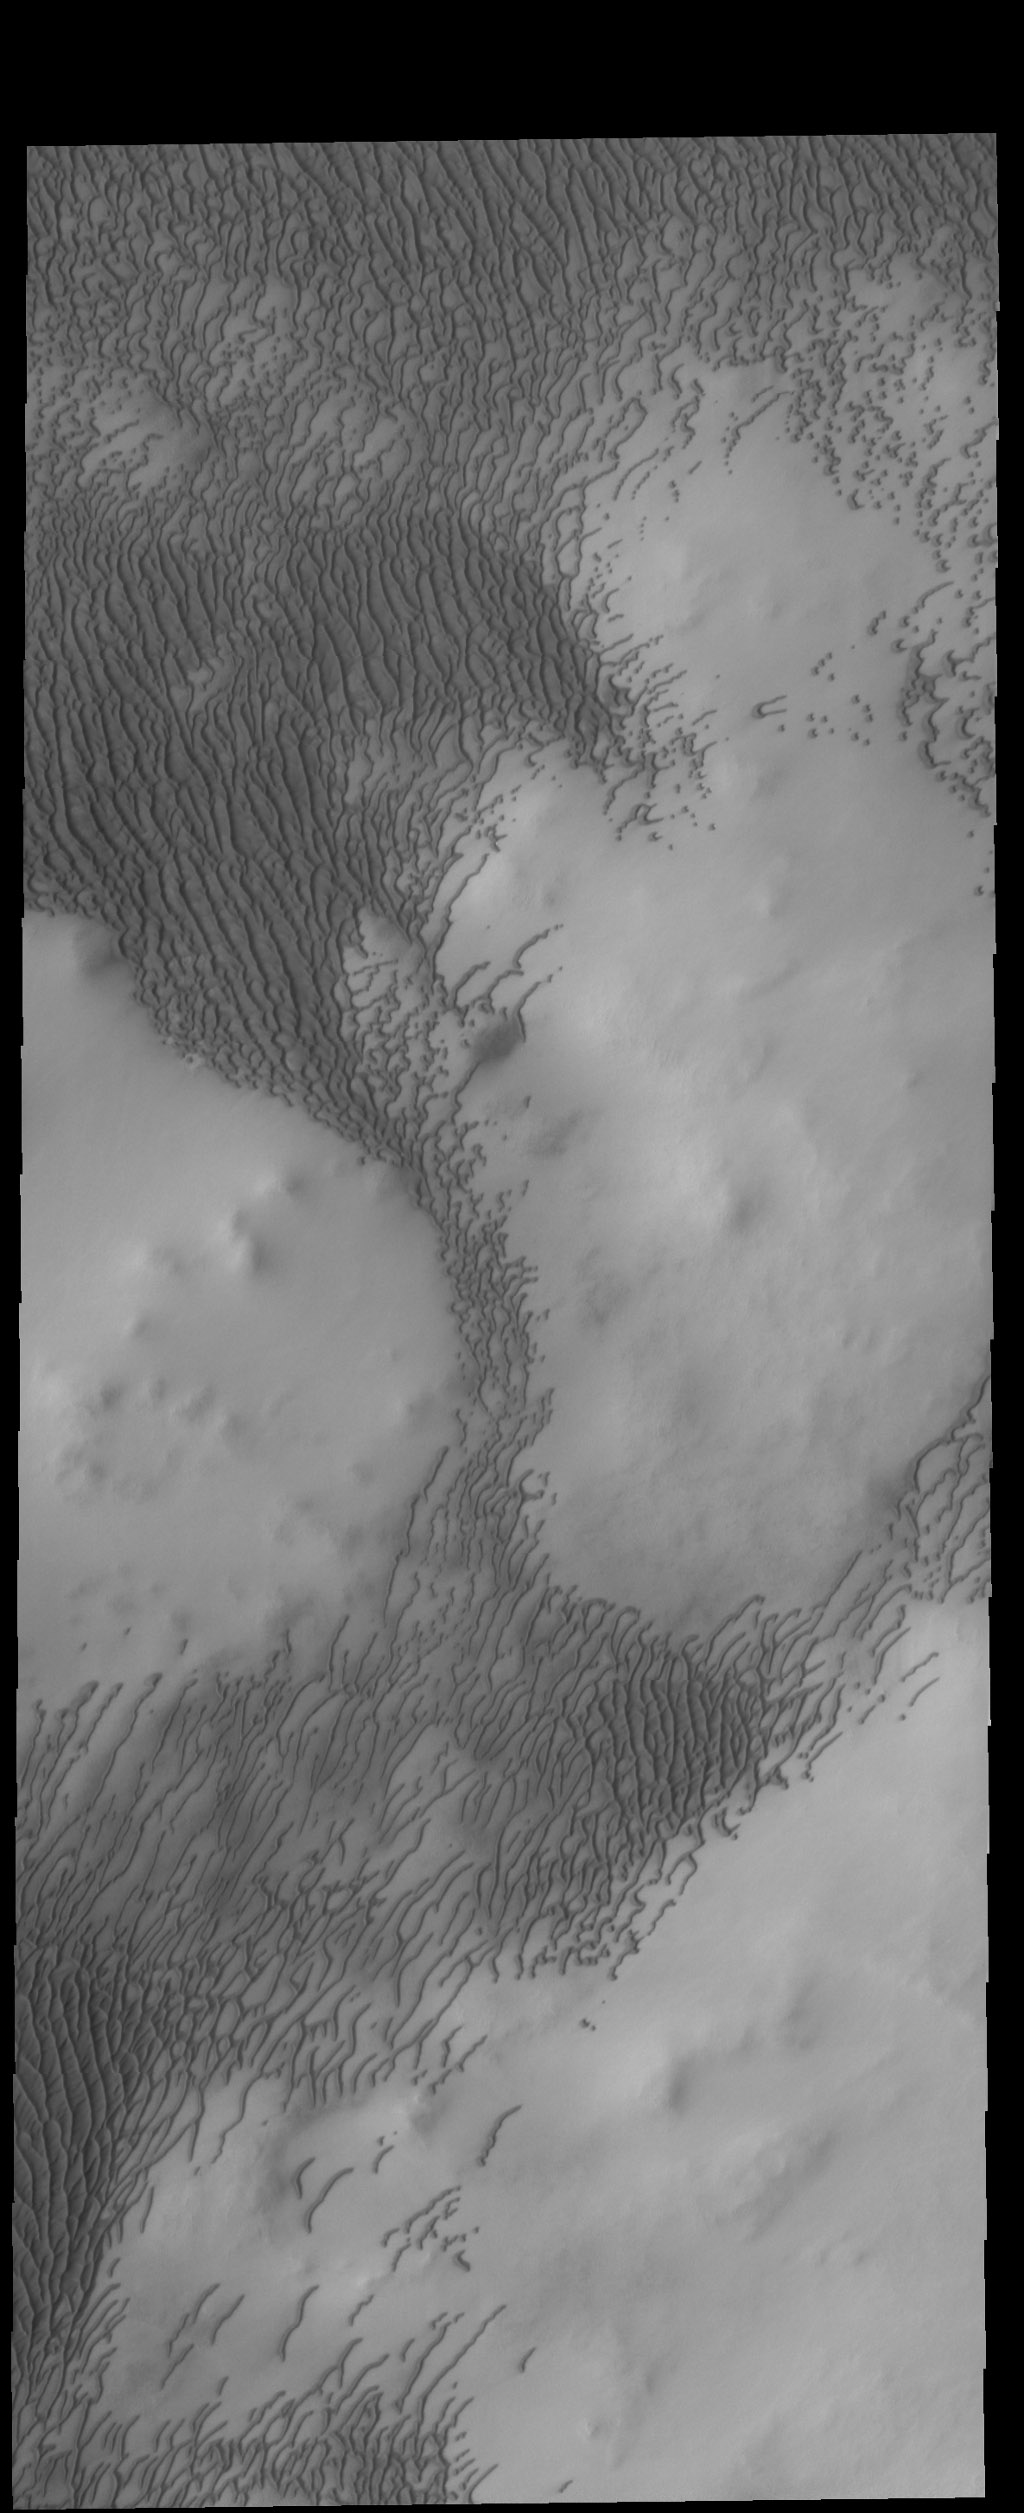 This image from NASA's 2001 Mars Odyssey spacecraft is part of Olympia Undae, but unlike yesterday's image, there is more topography in this region.